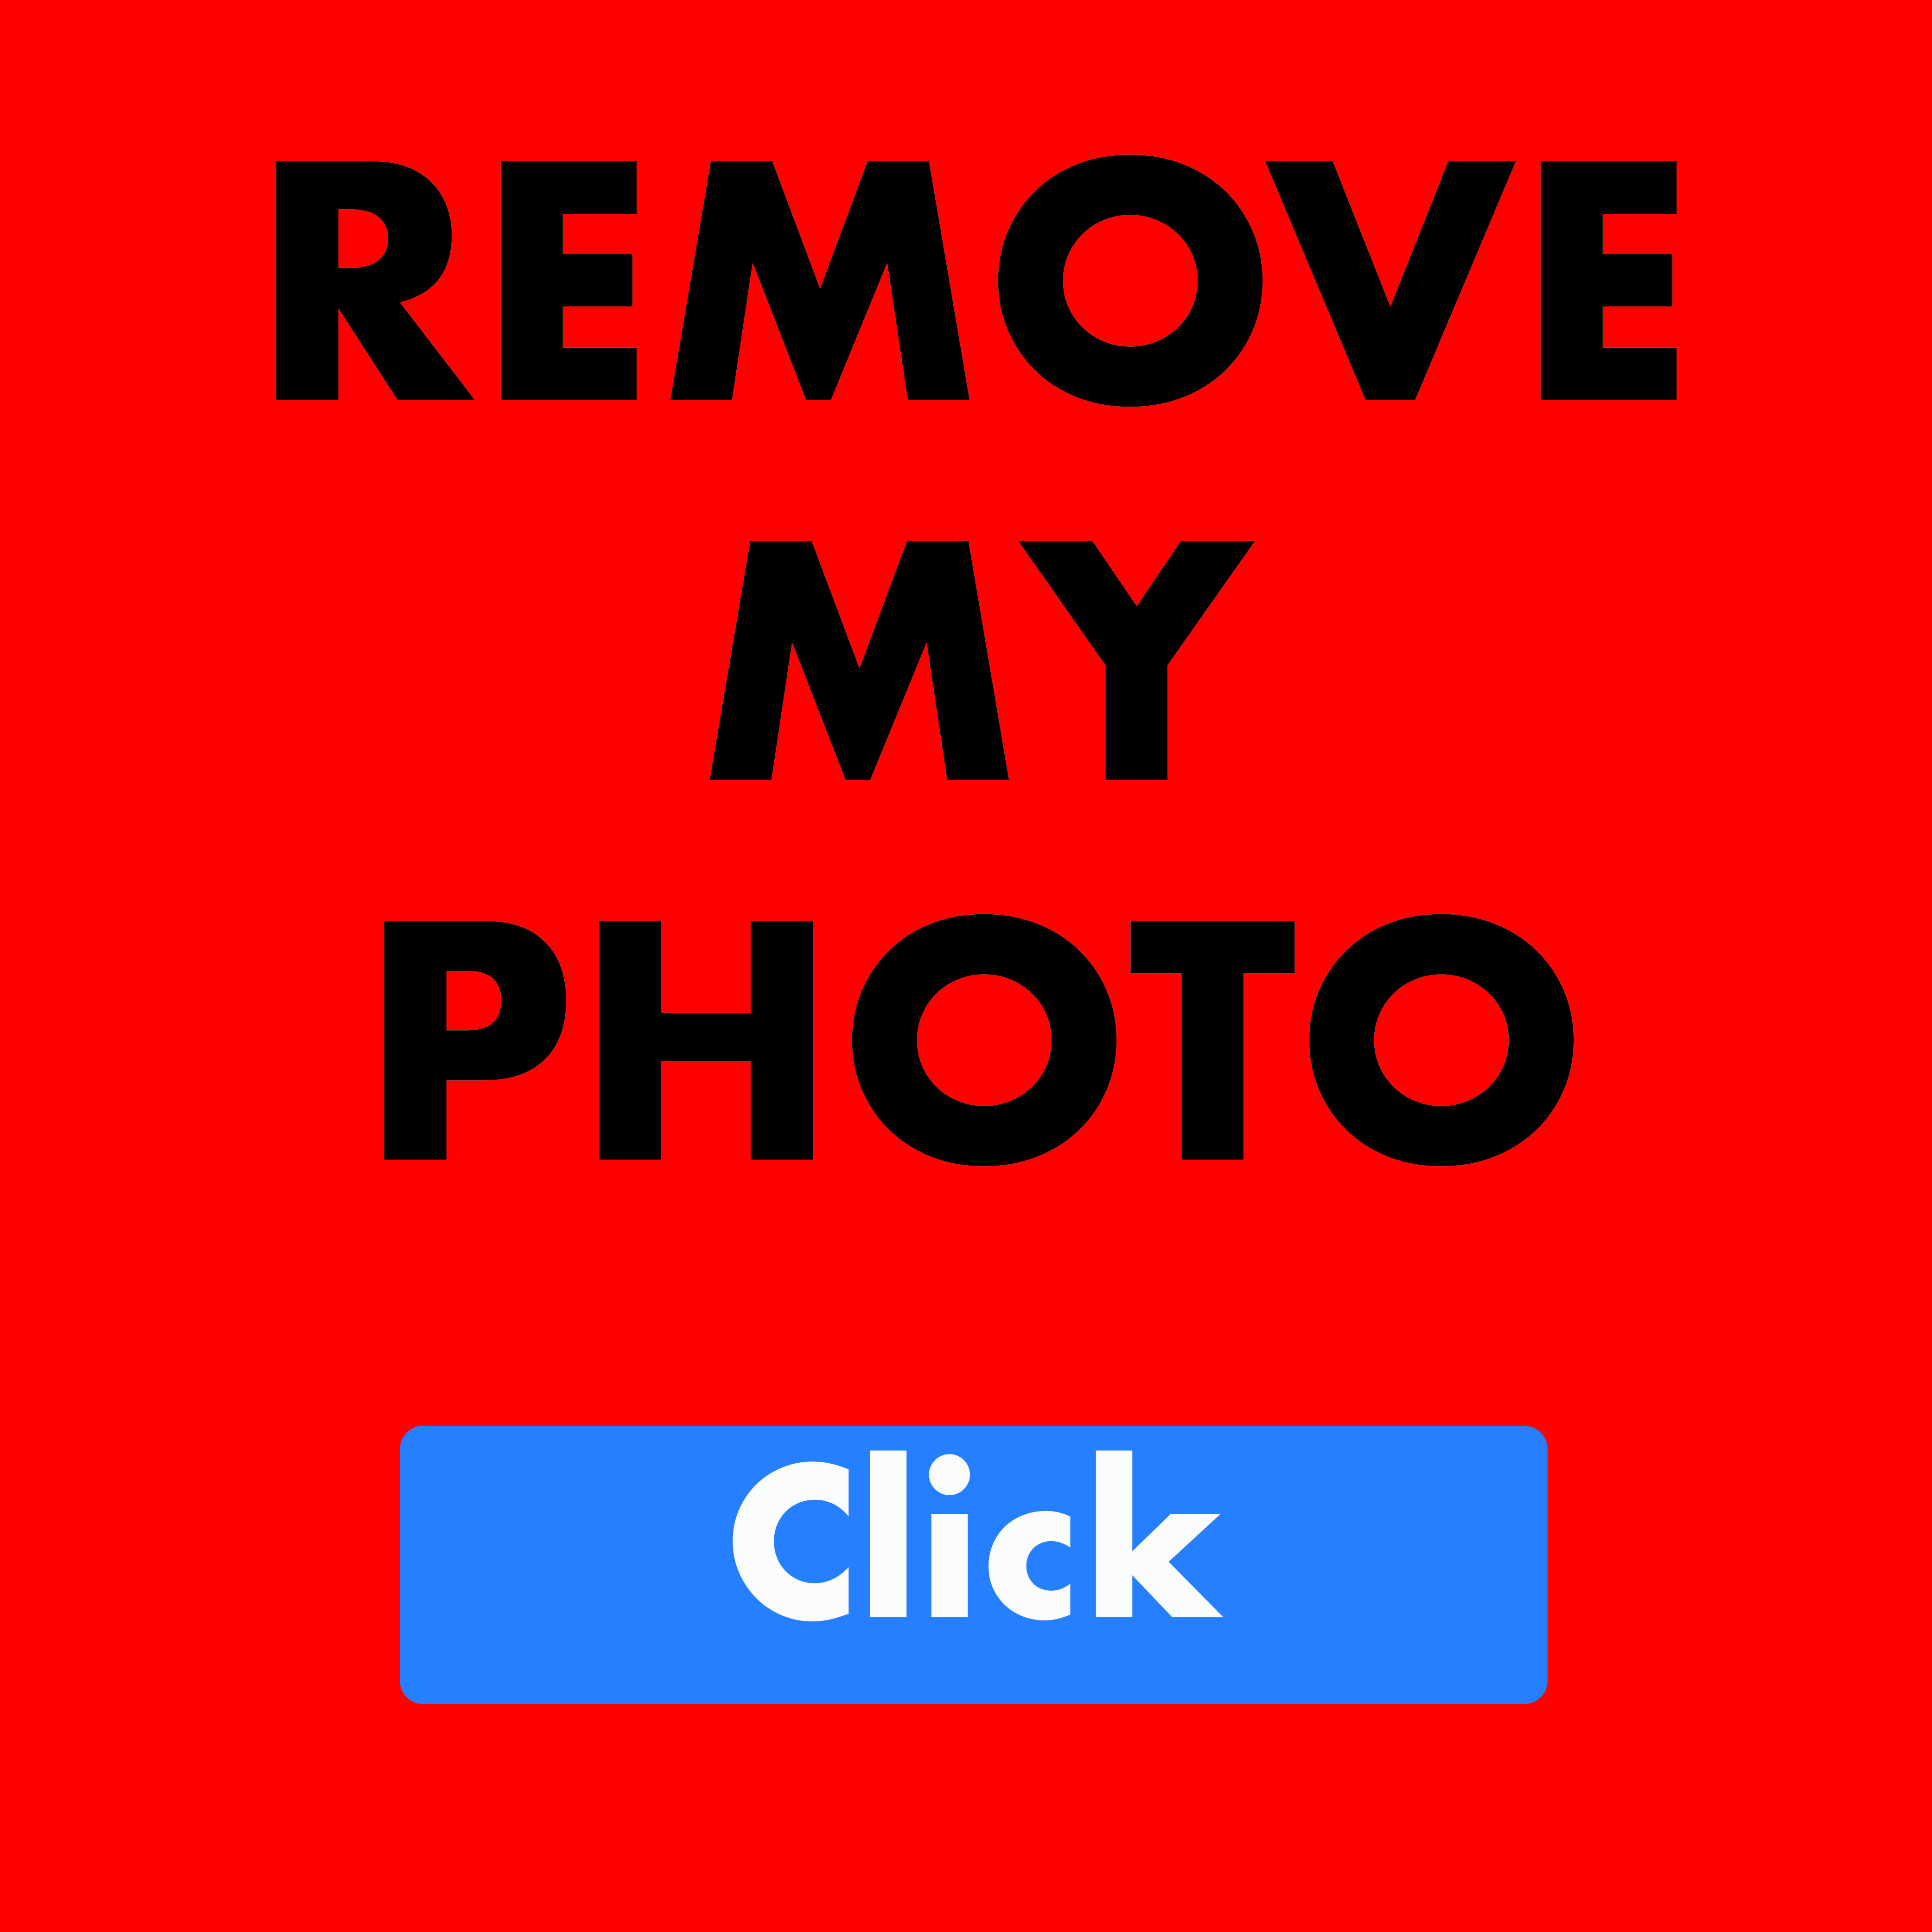 Remove My Photo